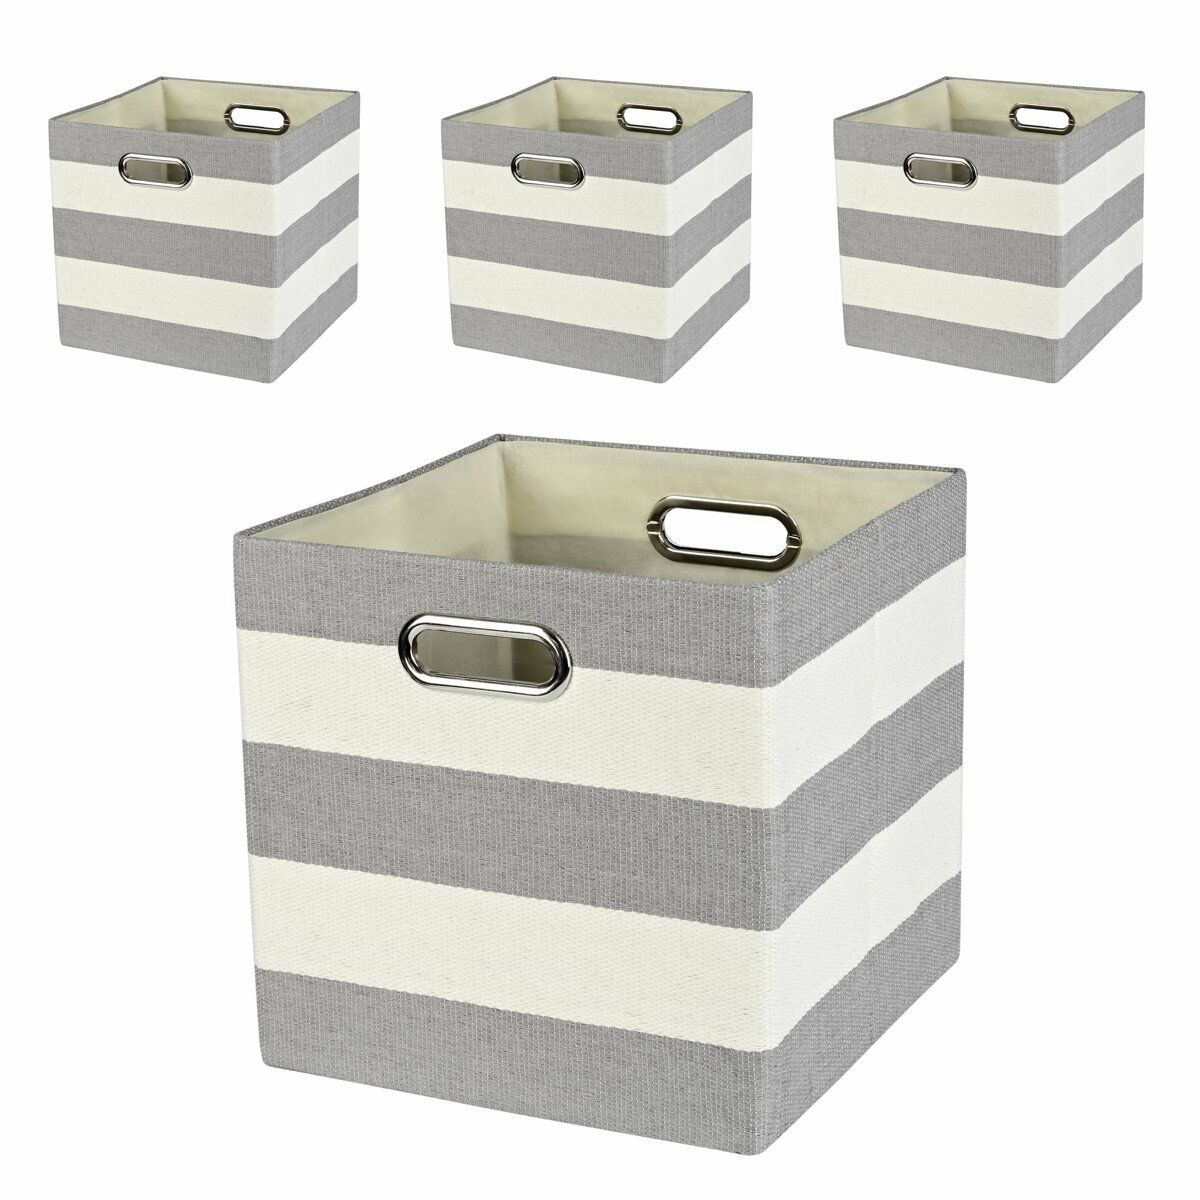 Posprica Collapsible Cube Organizers,Storage Cube Bins Boxes Basket Containers